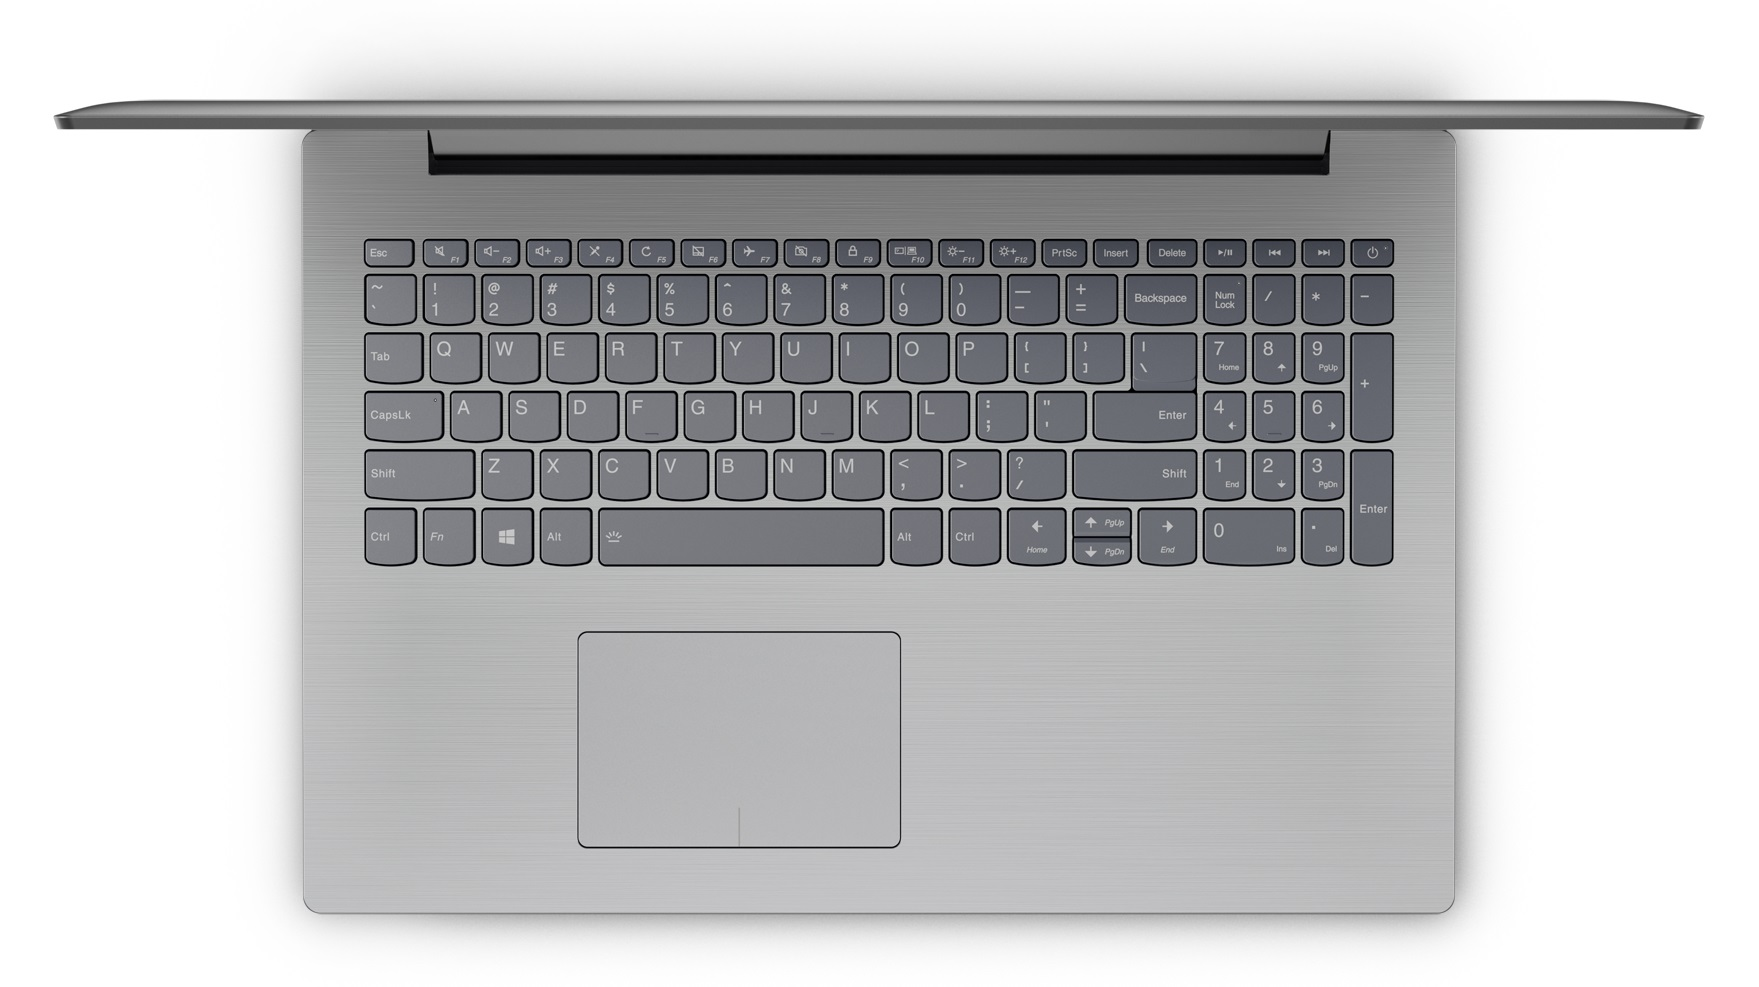 Фото  Ноутбук Lenovo ideapad 320-15IKB Platinum Grey (80XL03W8RA)